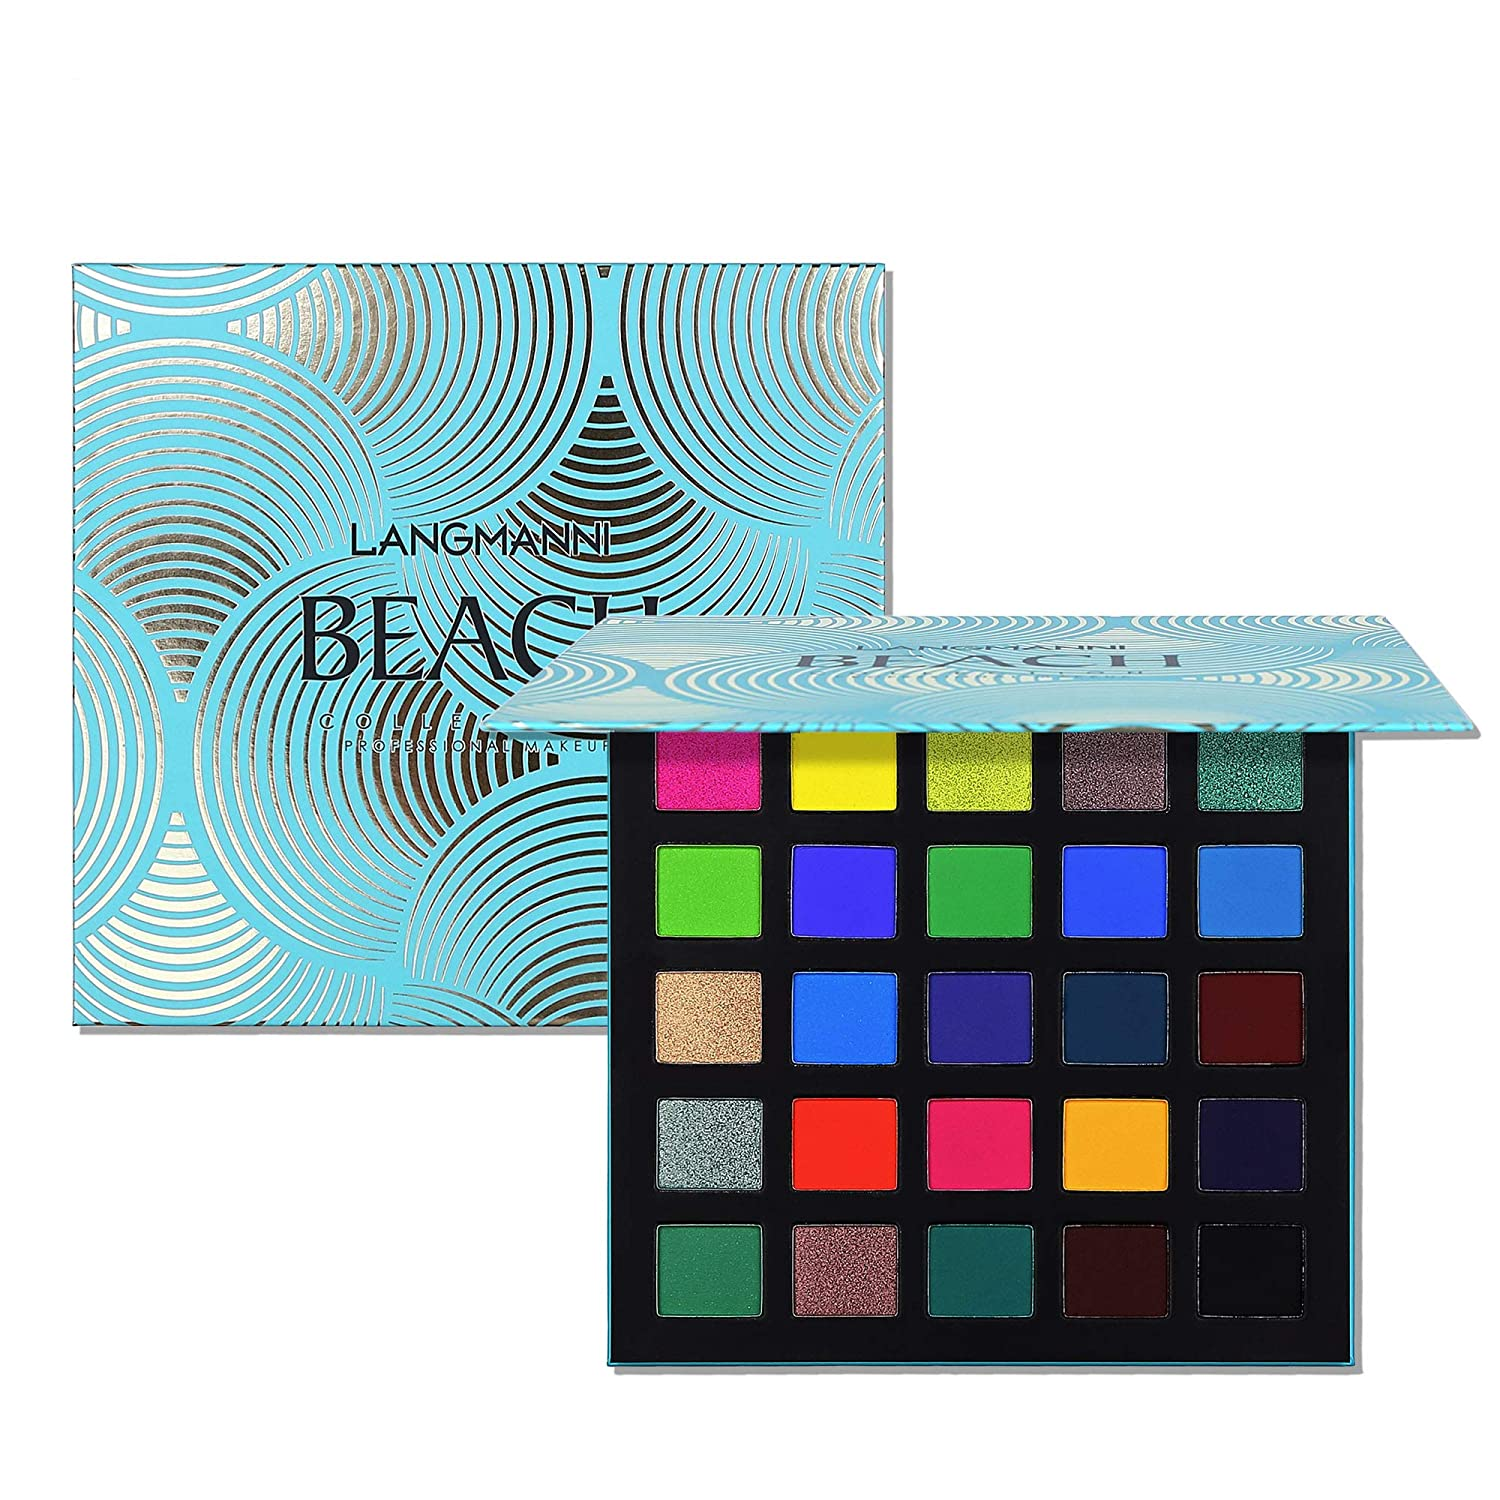 Eyeshadow Palette Naked Eyeshadow Sweatproof Makeup Set, Matte Glitter Pressed All Highly Pigmented Blending Powder, Natural Velvet Texture Eye Shadow Kit Perfect For Woman & Girl(Blue)